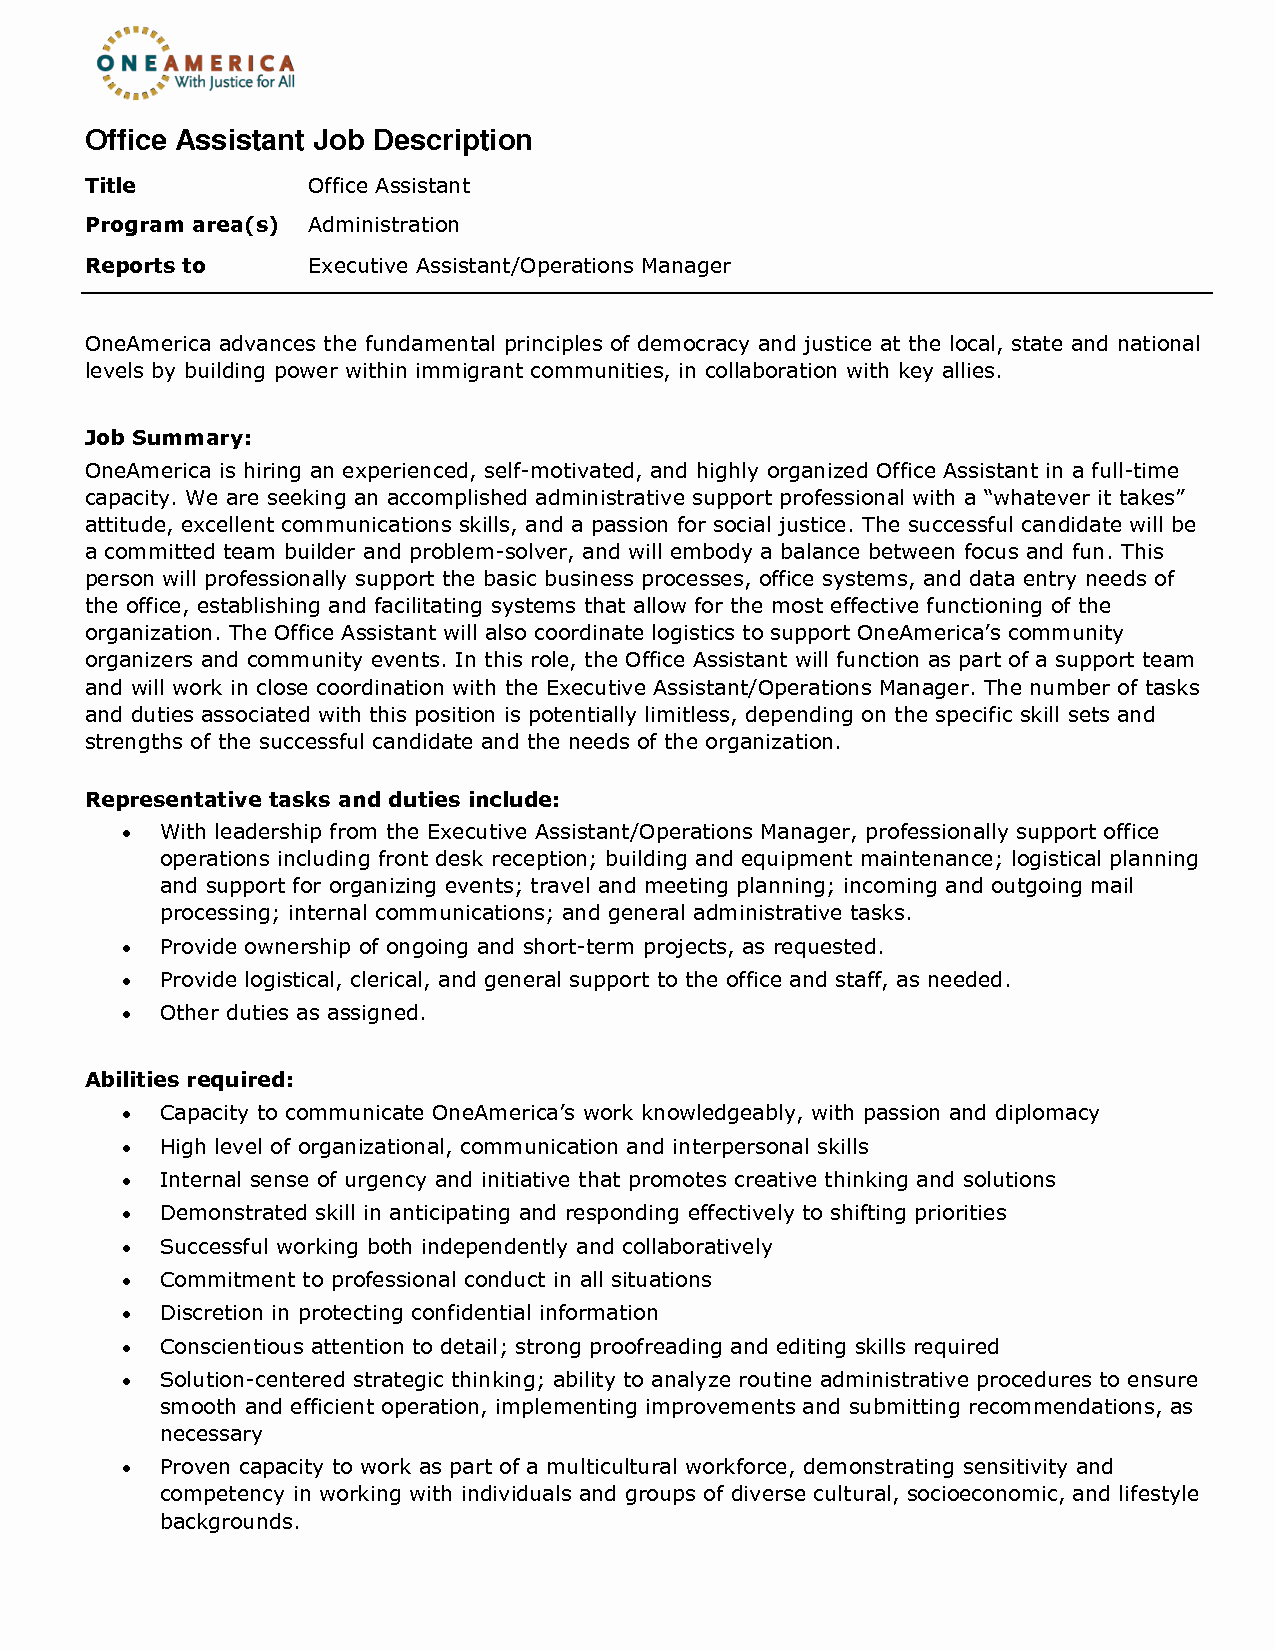 Resume Template for Office Job Awesome Fice assistant Job Description Resume 2016